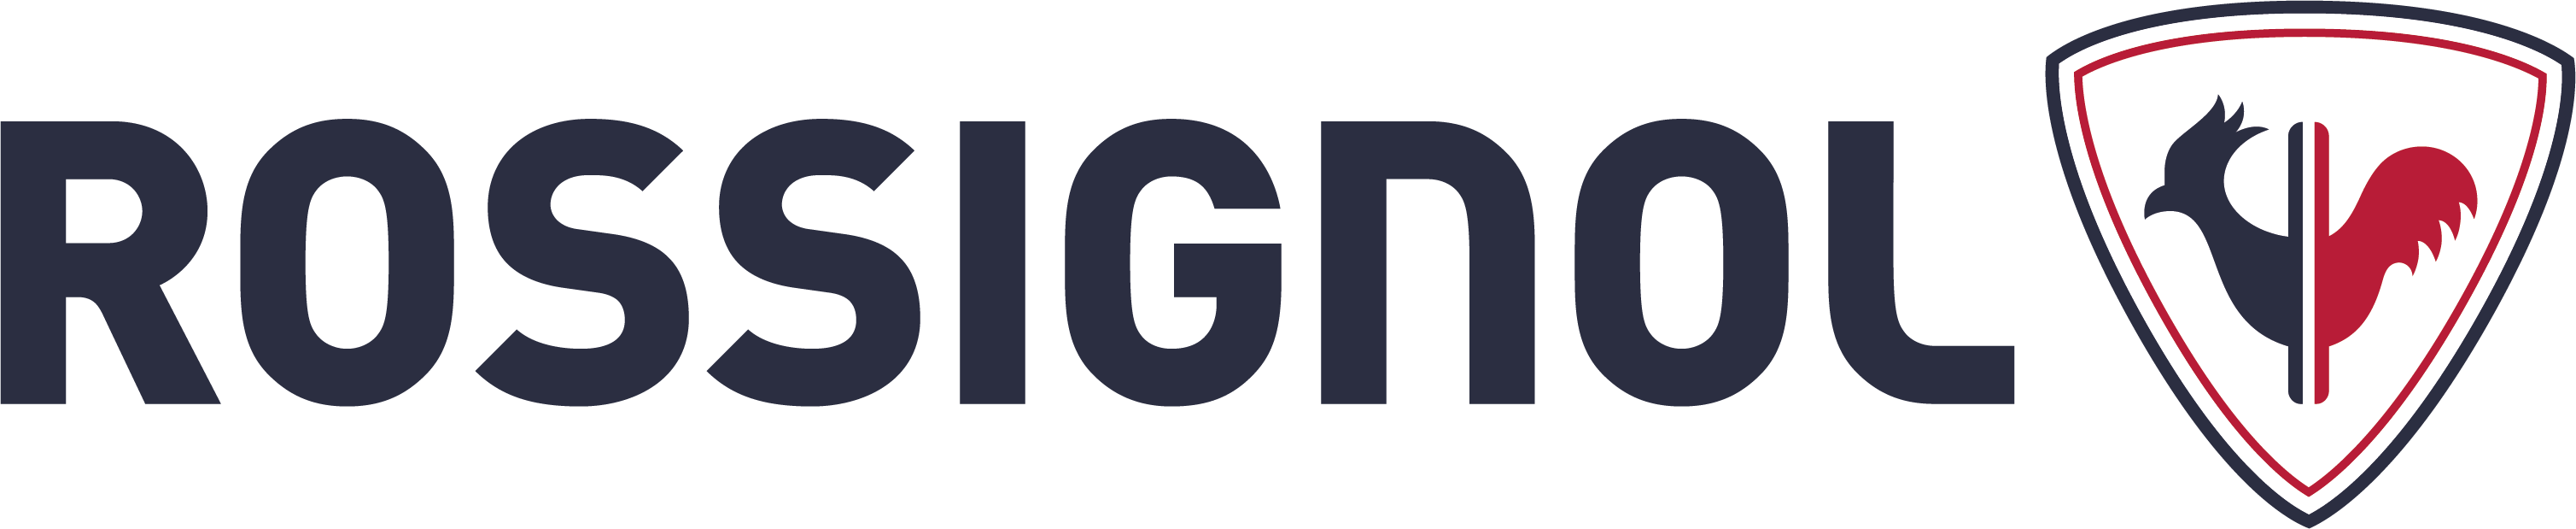 ROSSIGNOL_CORPORATE_LOGOTYPE_HORIZONTAL